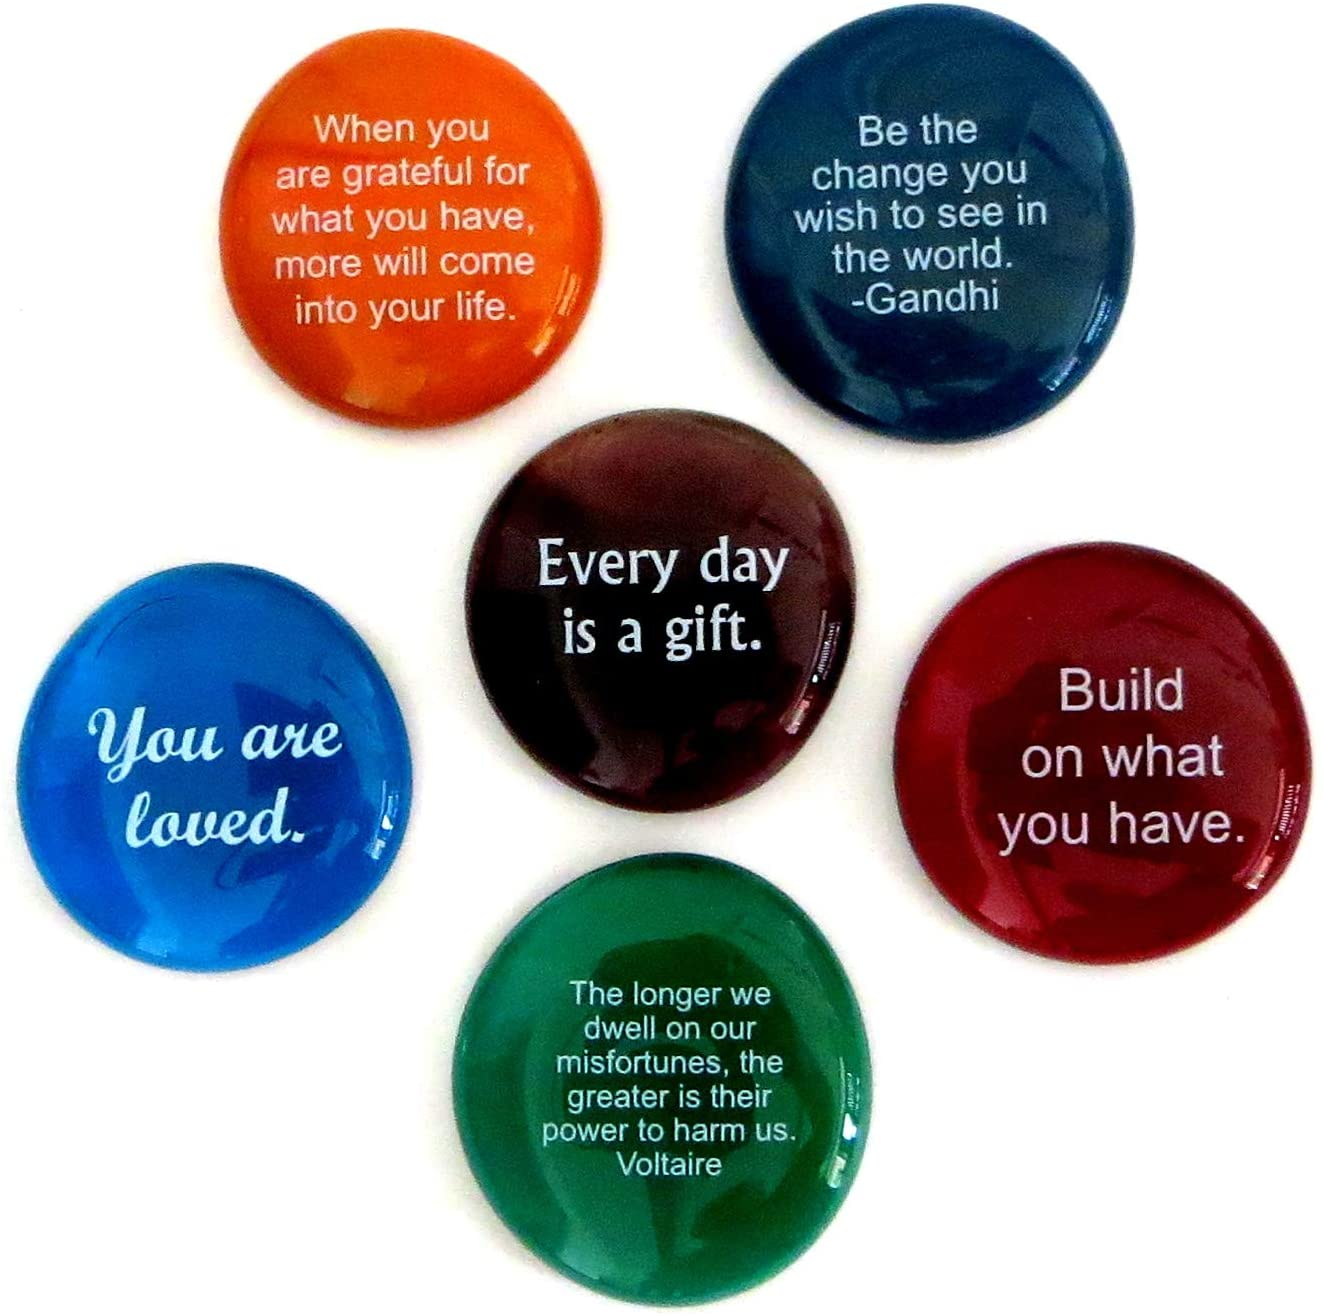 Lifeforce Glass Encouragement Stones, Motivational and Inspirational Quotes and Sayings on Translucent and Opaque Glass Stones, Set of 6